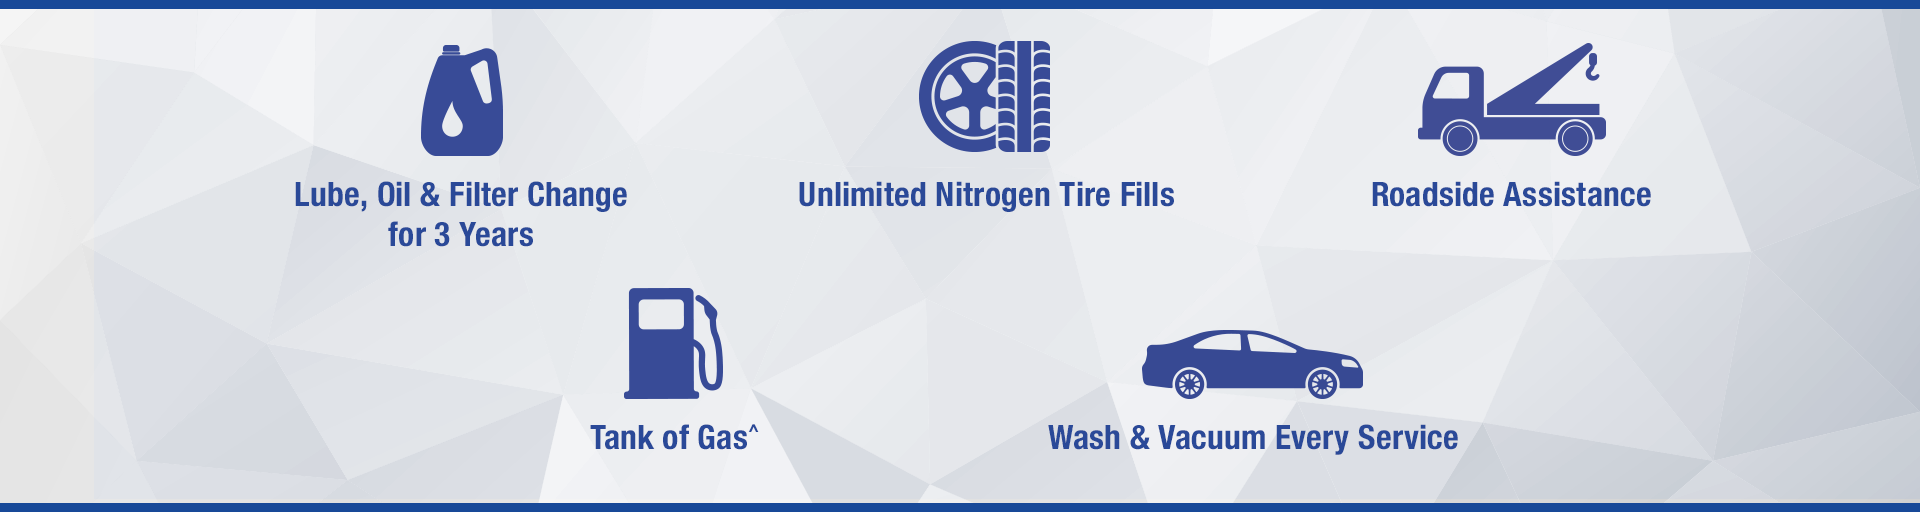 Lube, Oil and Filter Change for 3 Years, Unlimited Nitrogen Tire Fills, Roadside Assistance, Free Tank of Gas^, Wash and Vacuum Every Service